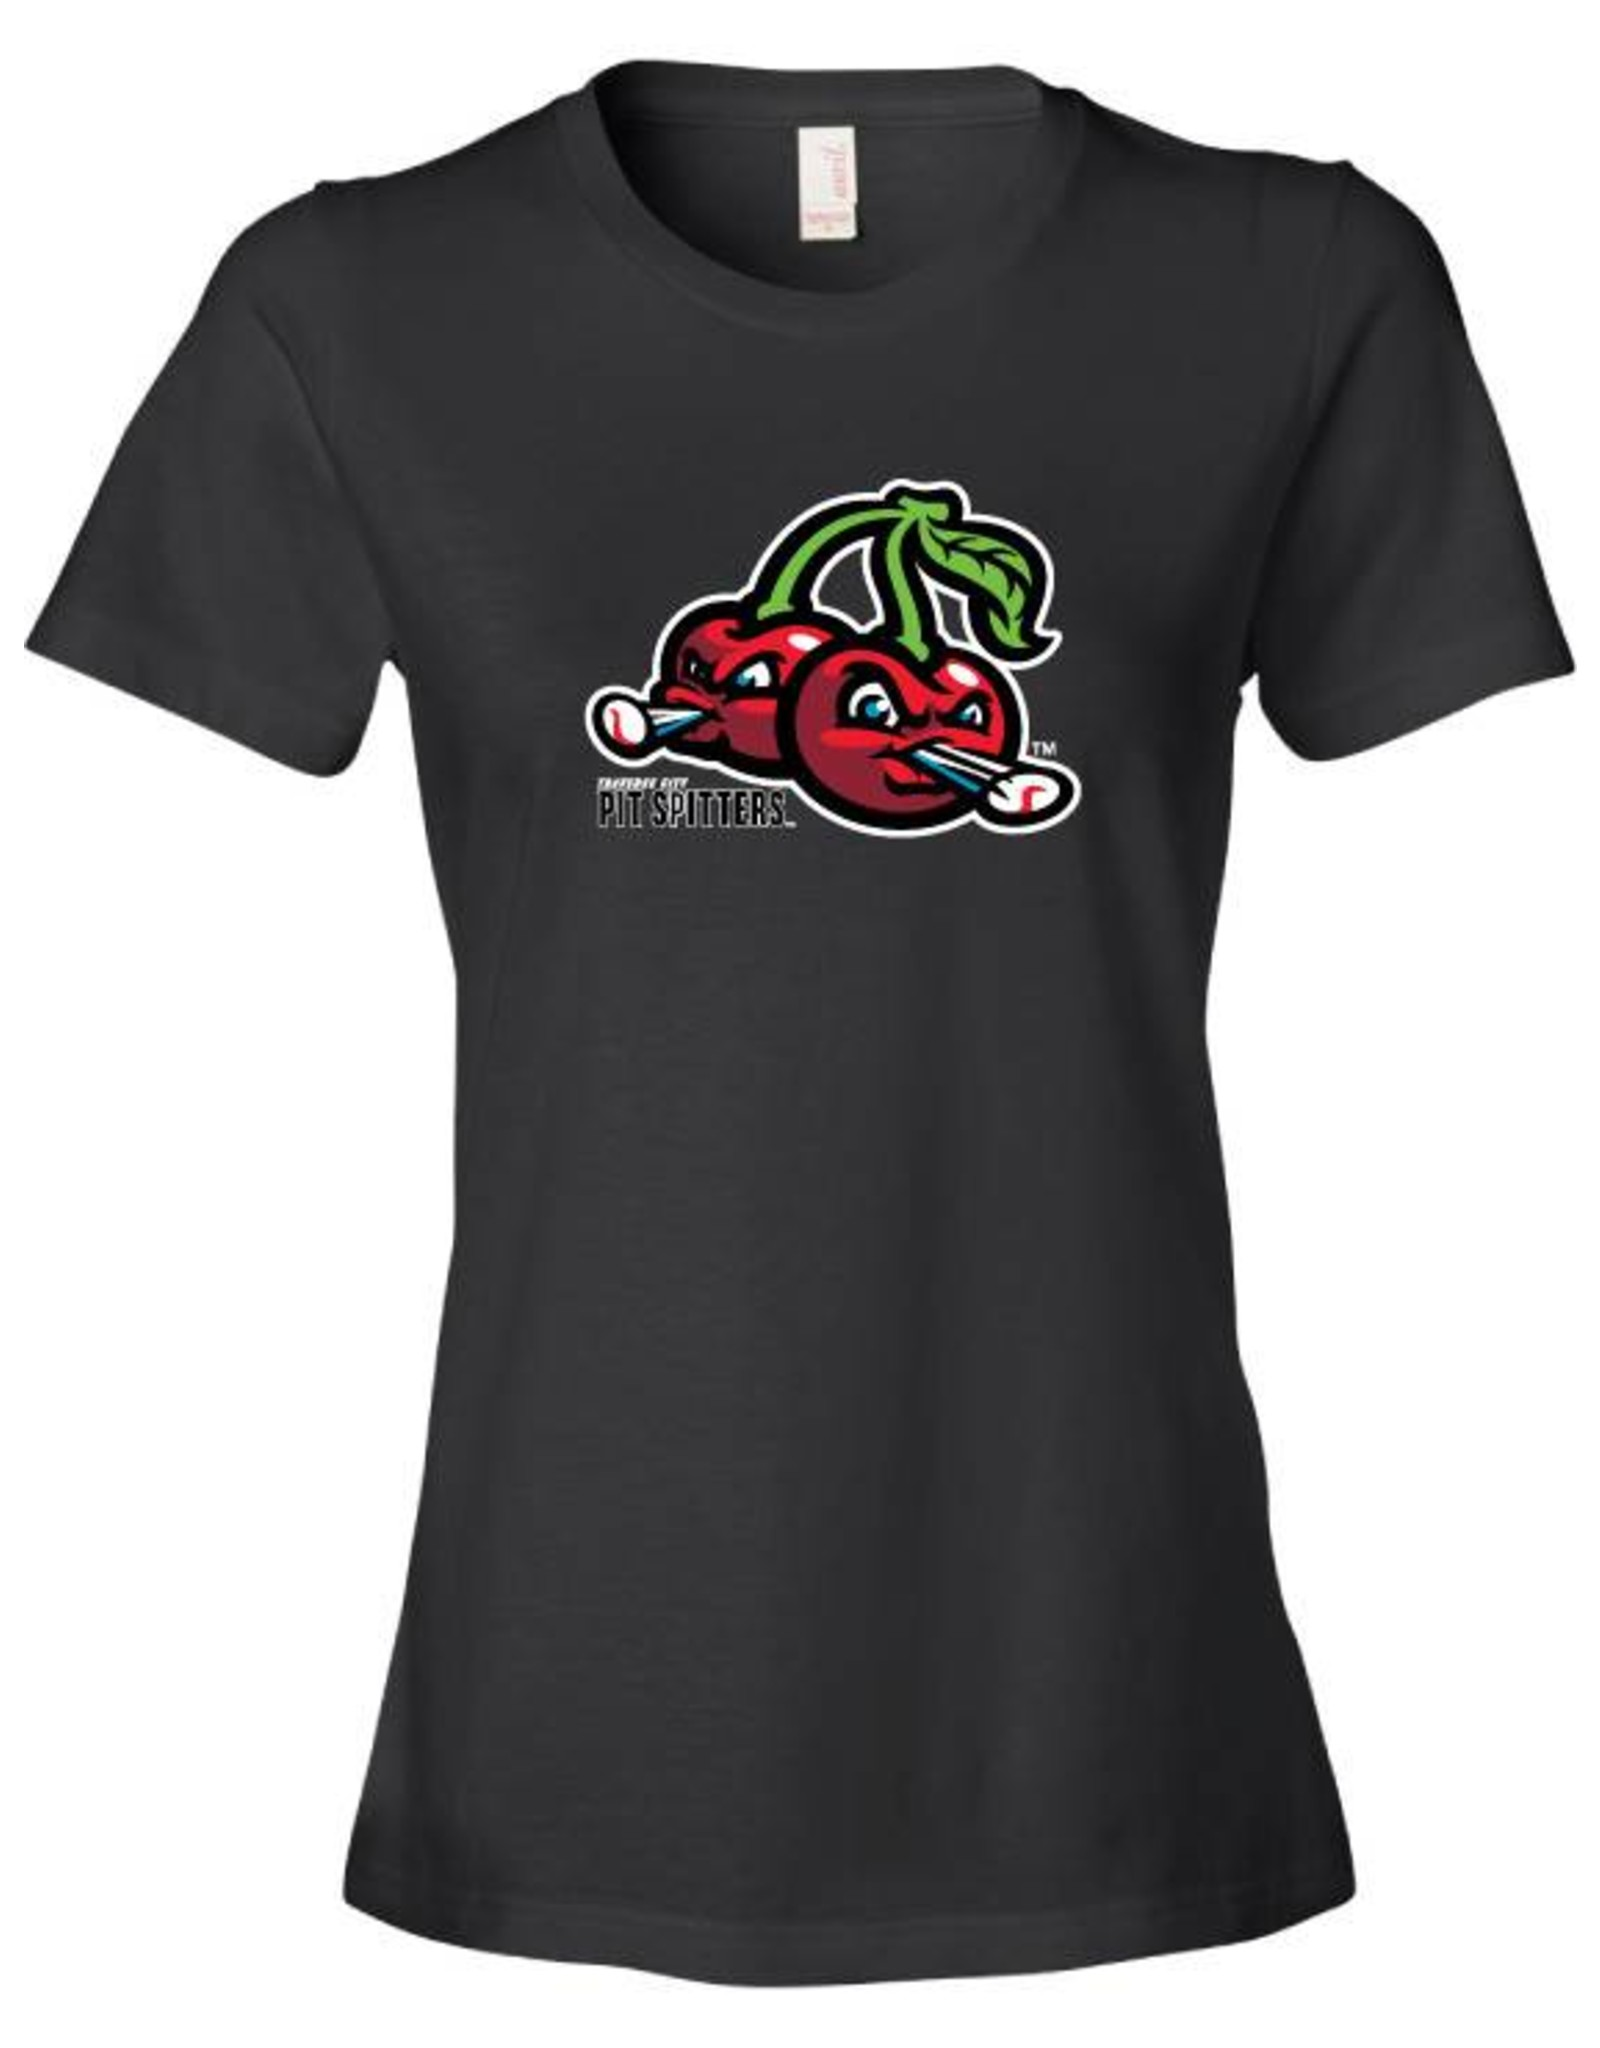 2620 Ladies Cherries Logo Black Tee